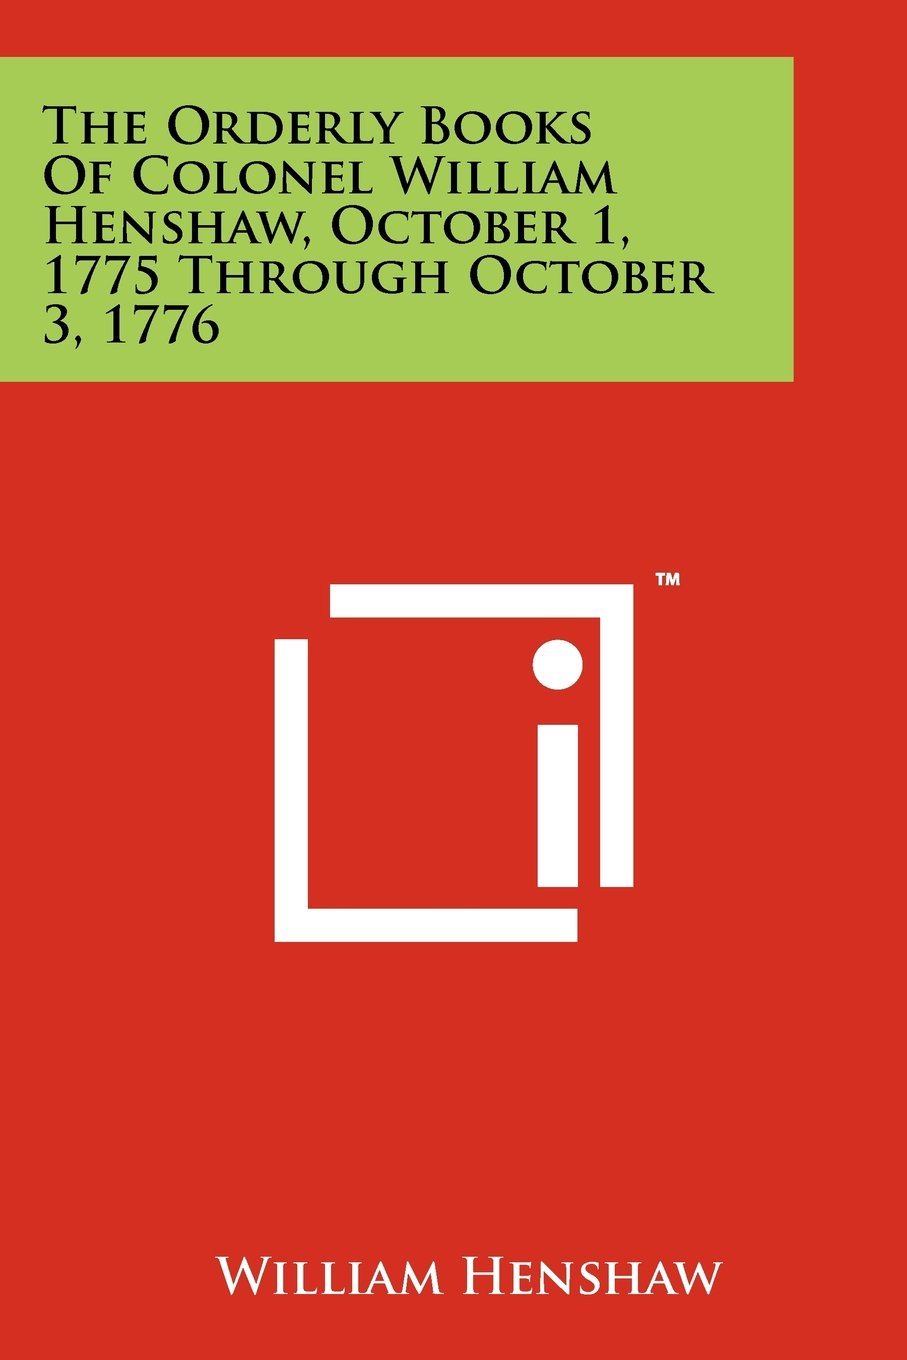 Download The Orderly Books of Colonel William Henshaw, October 1, 1775 Through October 3, 1776 PDF